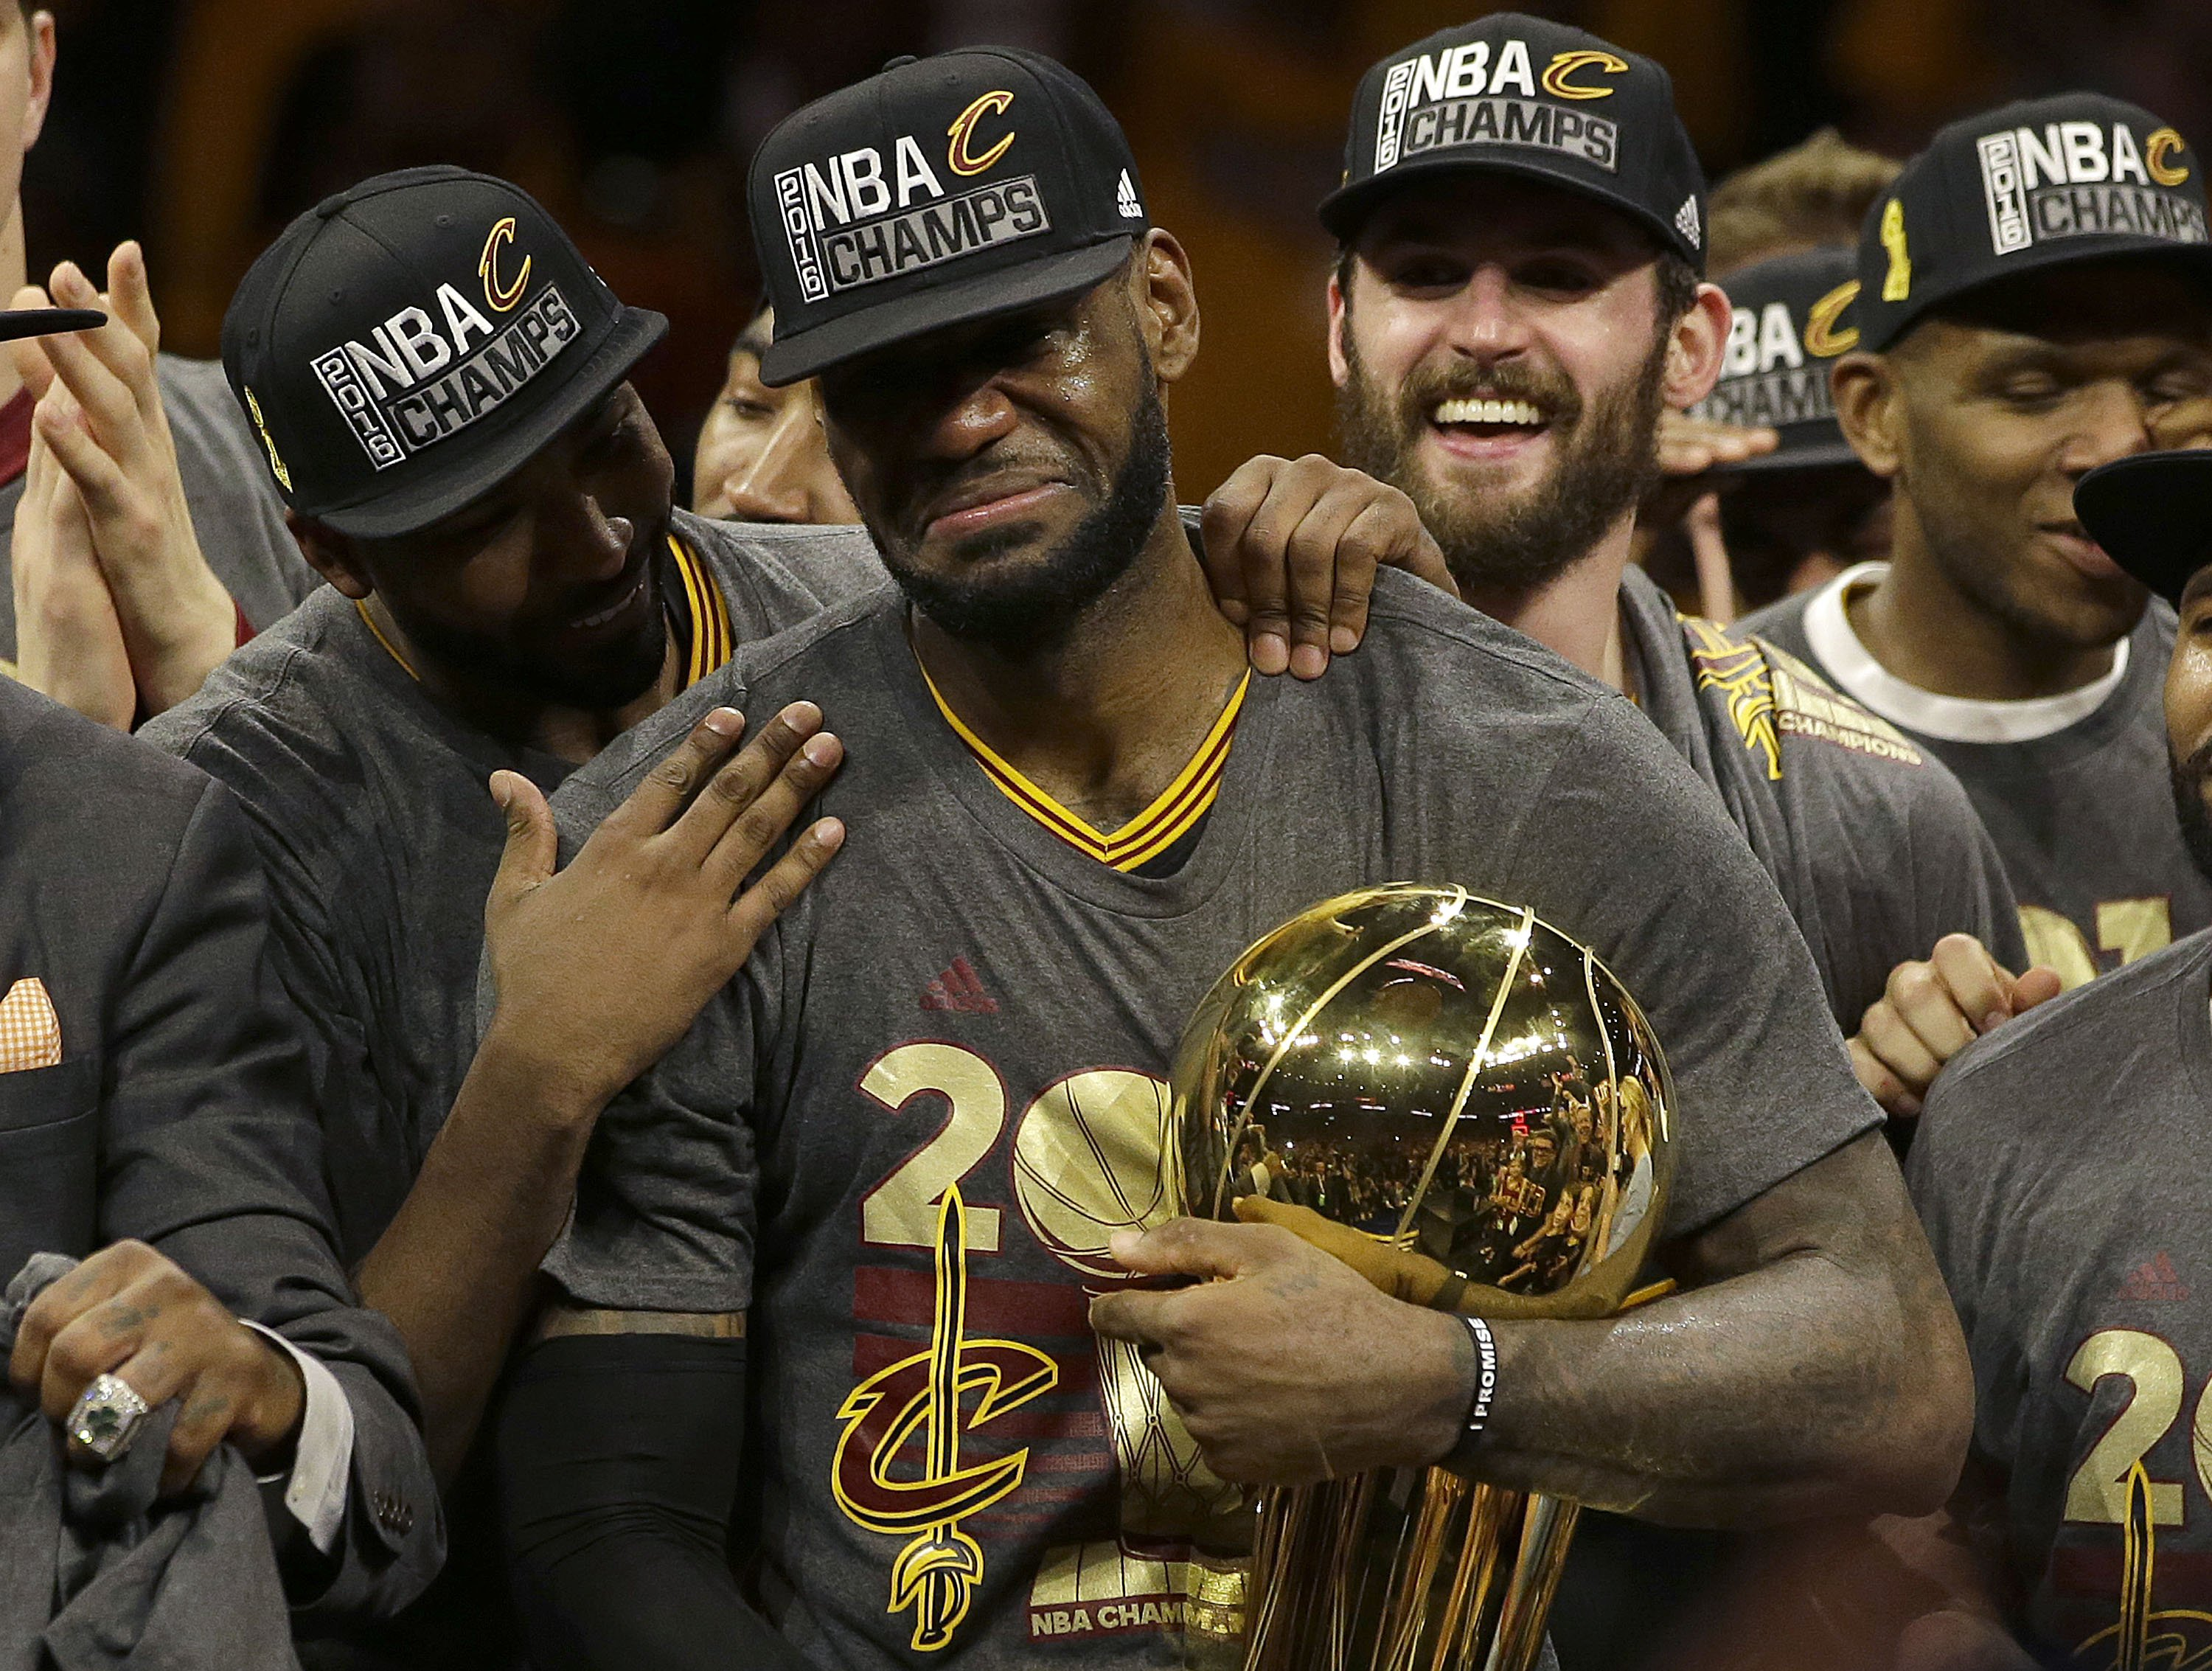 Cavs stop for Vegas party on way home to Cleveland